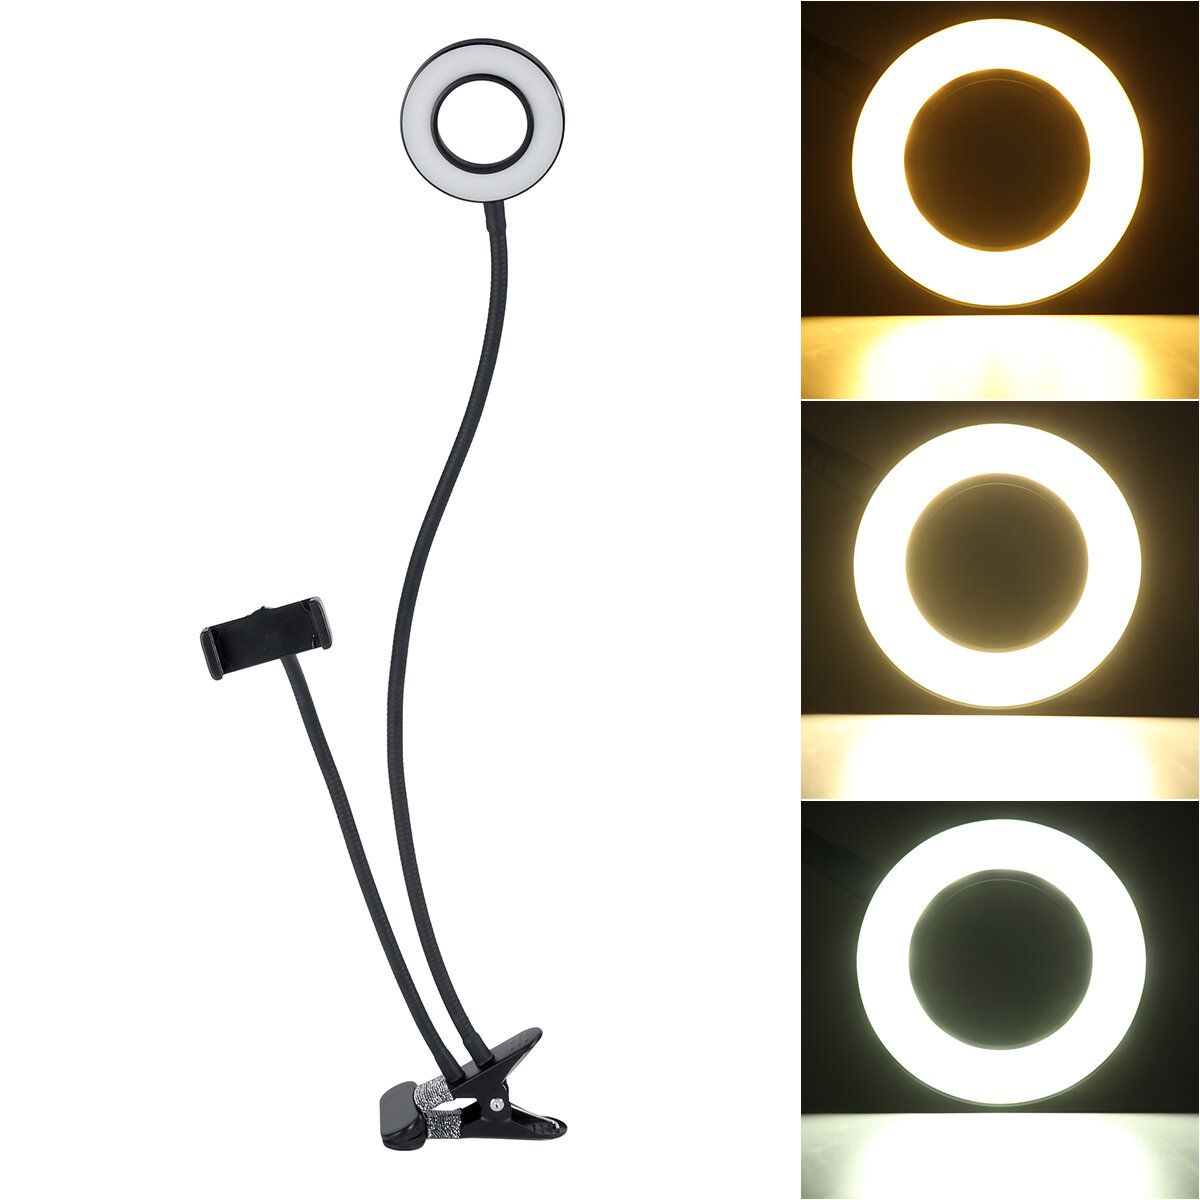 BG12W 2 in 1 Flexible Controllable USB Interface 9cm 12W LED Selfie Ring Light + Desktop Phone Holder Clip Photography YouTube Video Makeup Live Stream with Remote Shutter for Smart Phone between 5.8 8.5cm Width